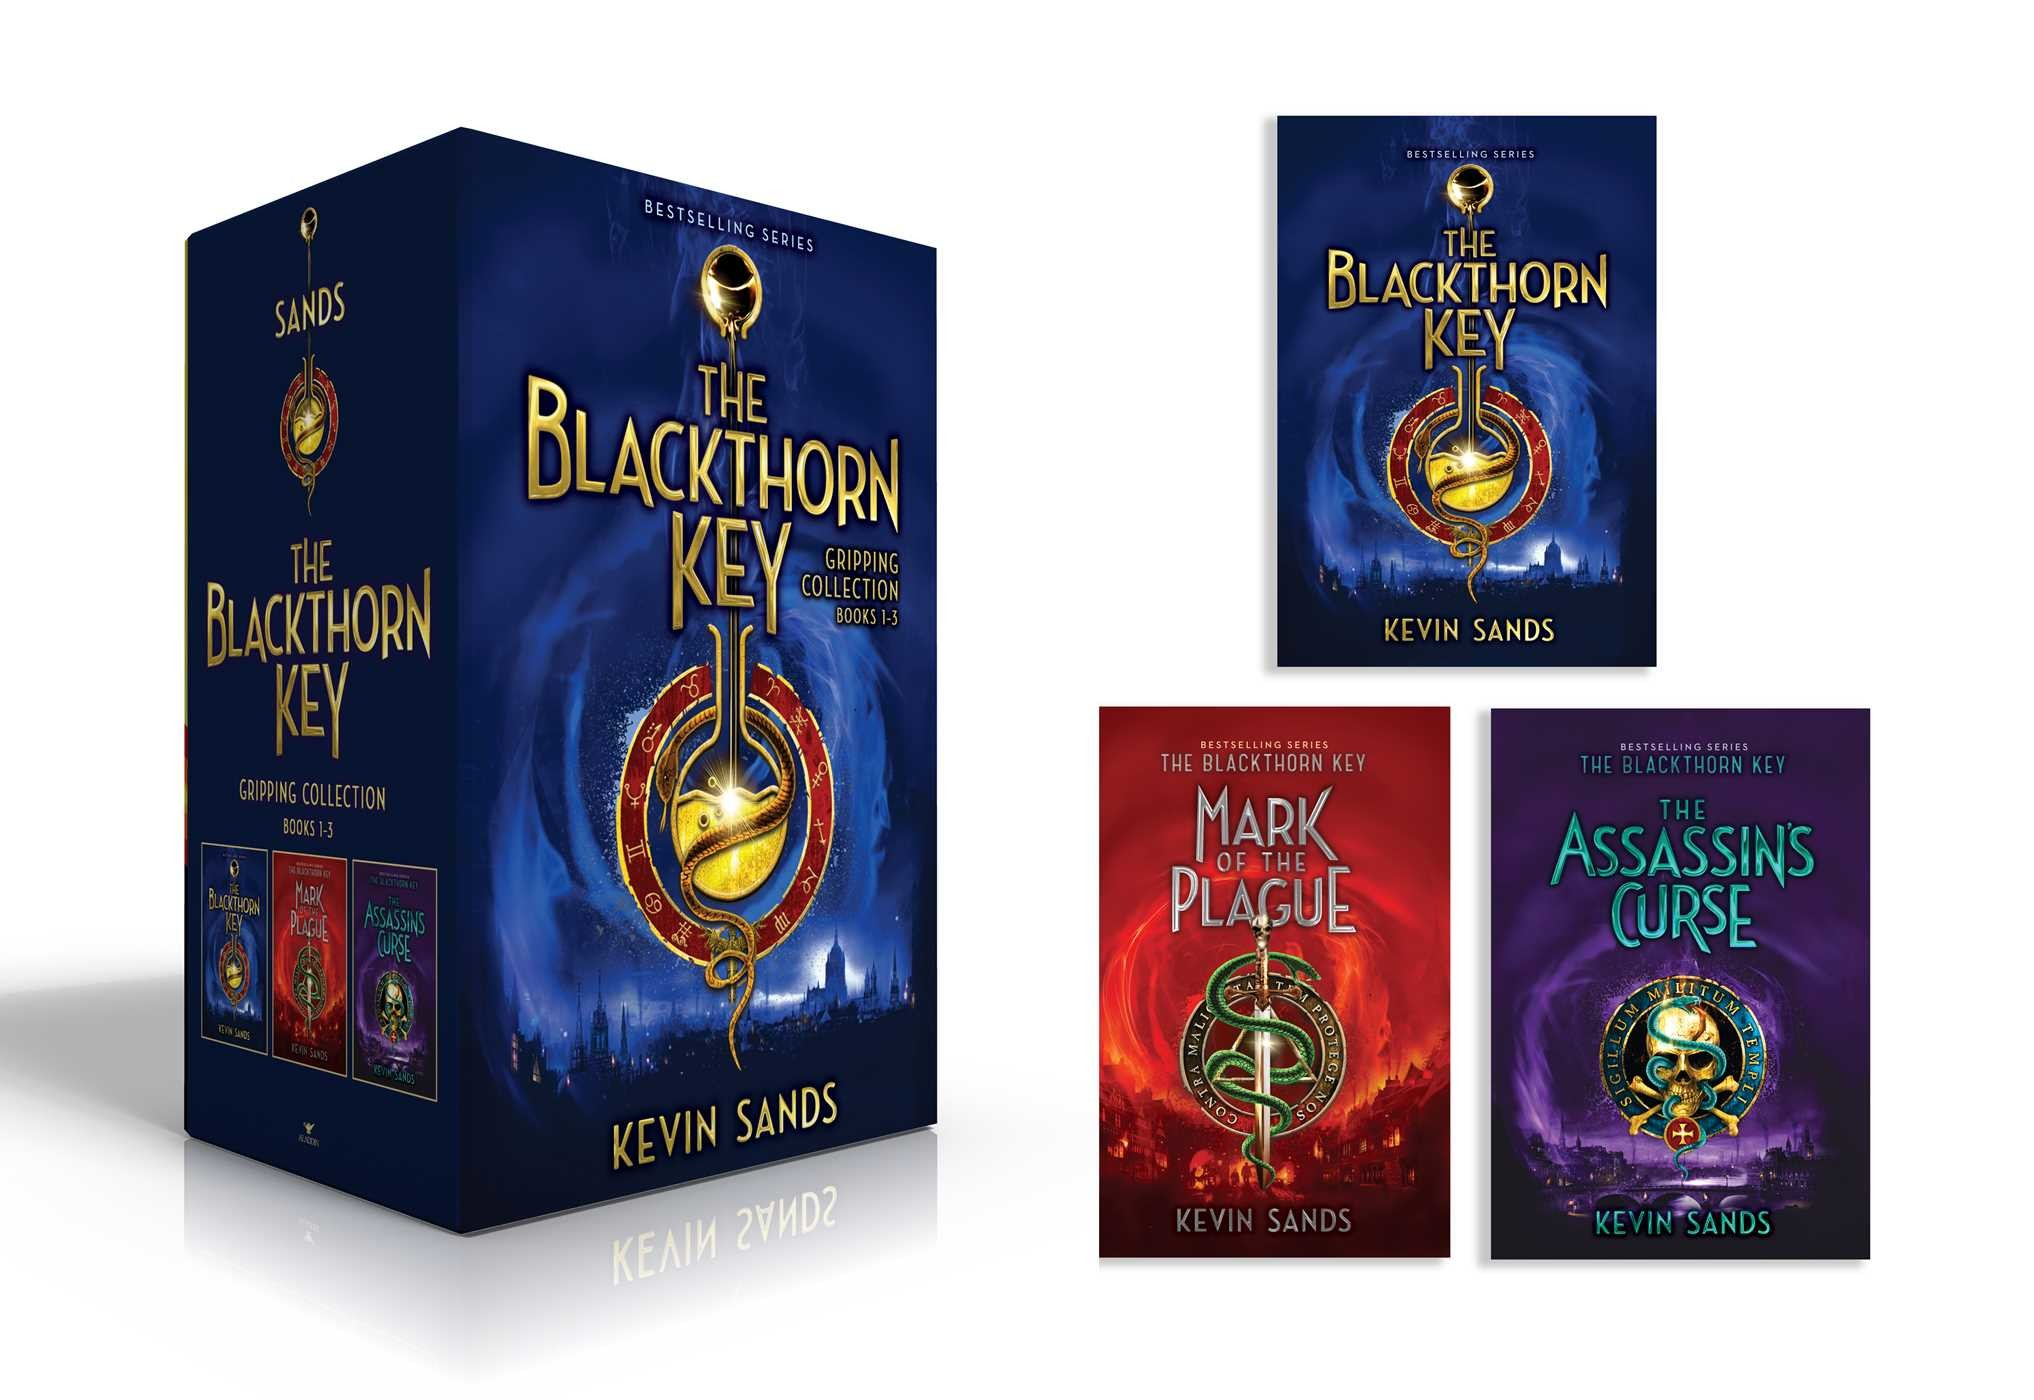 The blackthorn key gripping collection books 1 3 9781534416321.in01